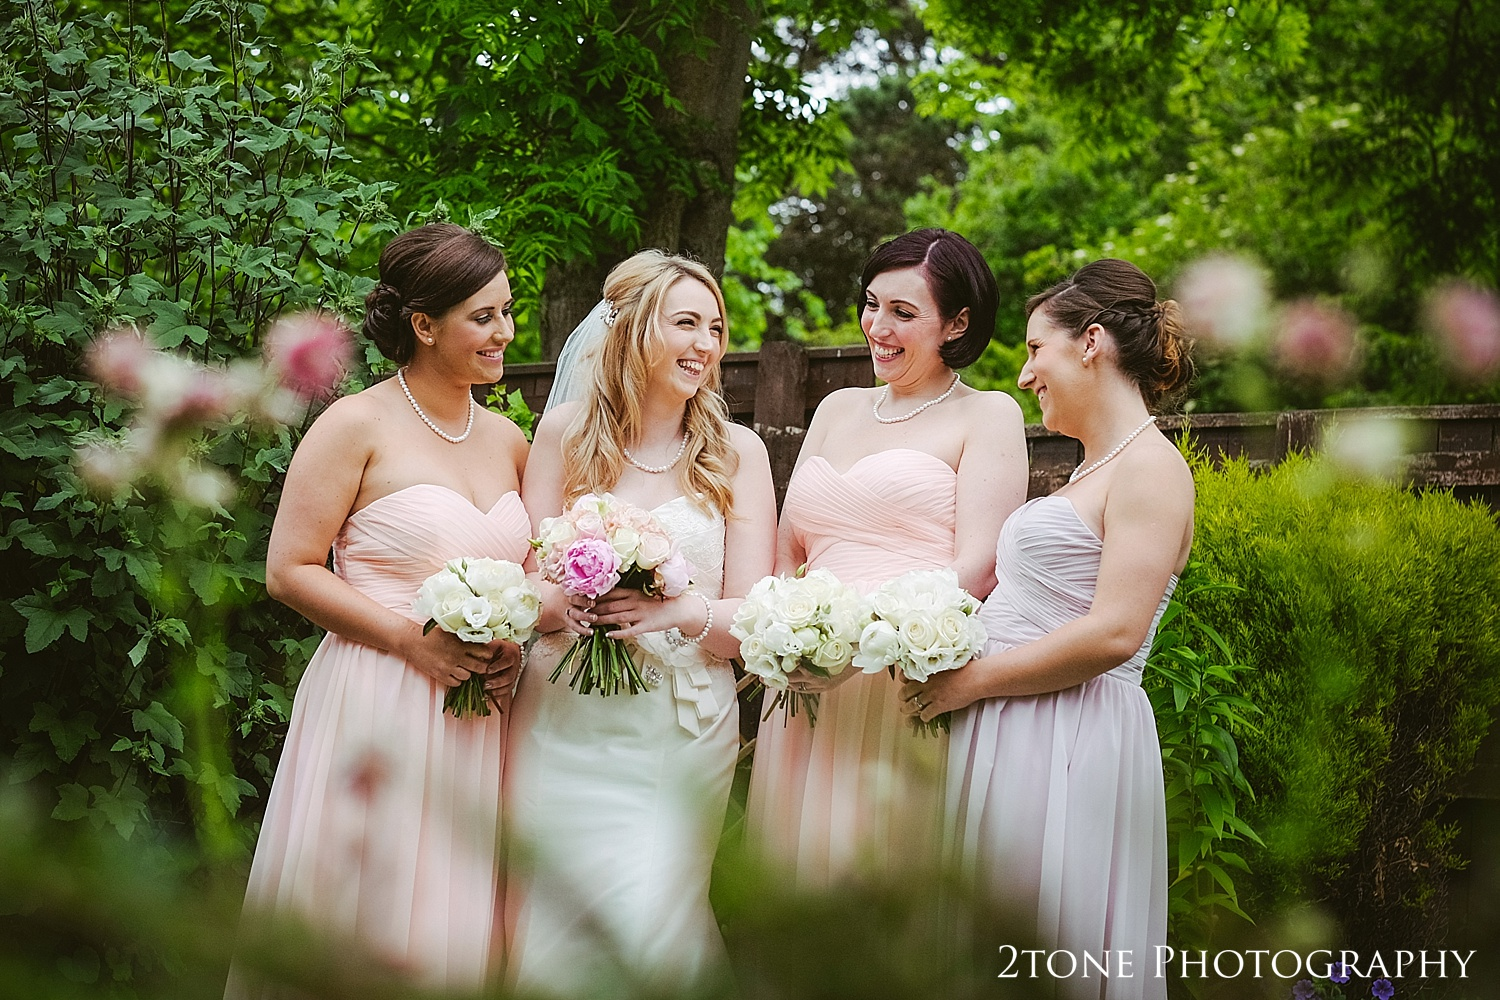 The bride and bridesmaids by www.2tonephotograhy.co.uk